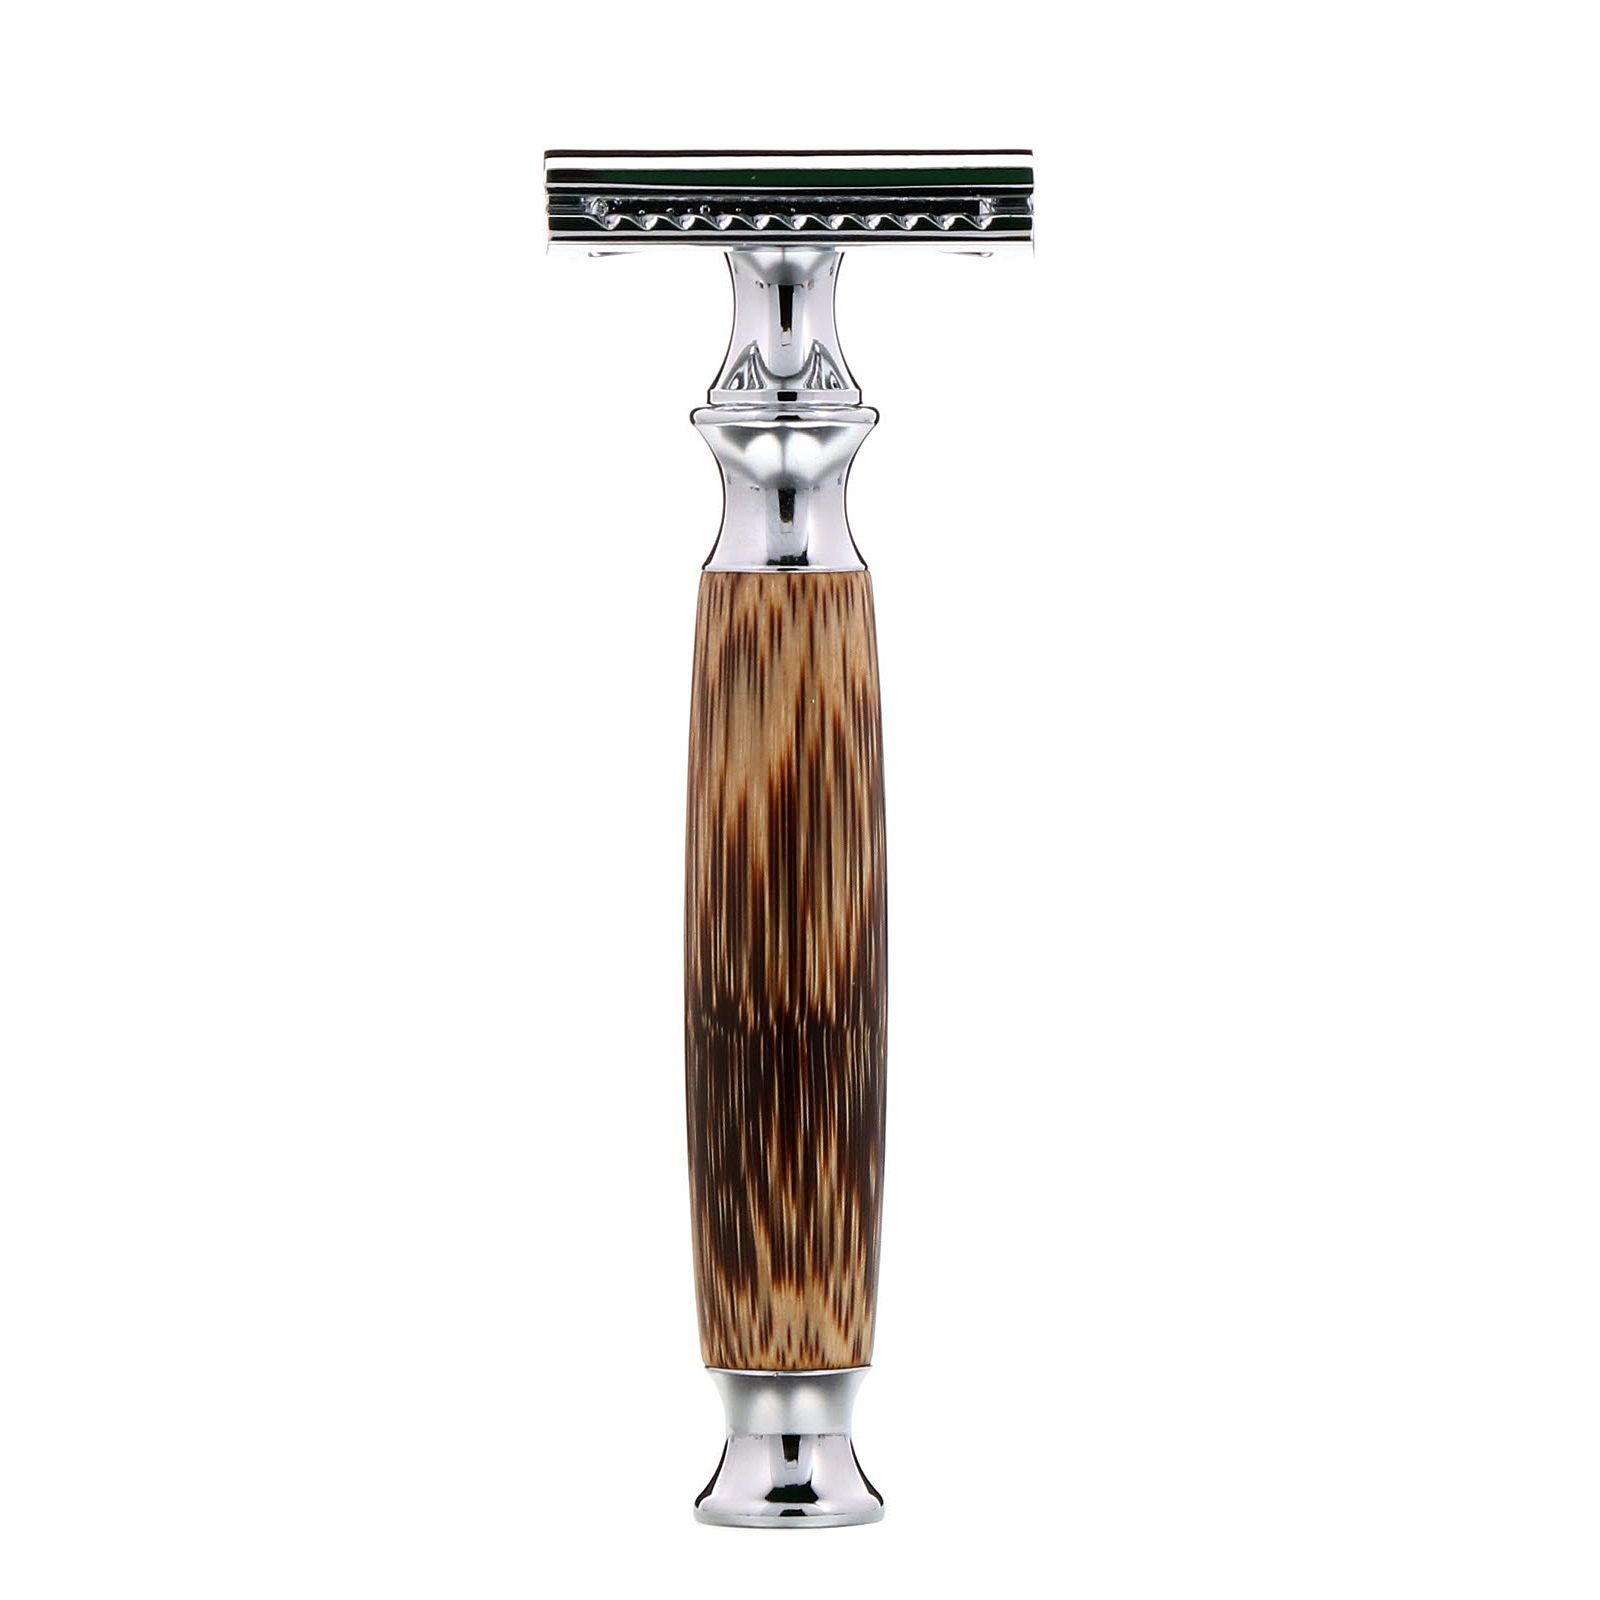 Wowe Double Edge Safety Razor With Bamboo Handle 1 Razor 5 Blades Bamboo Handles Safety Razor Biodegradable Products